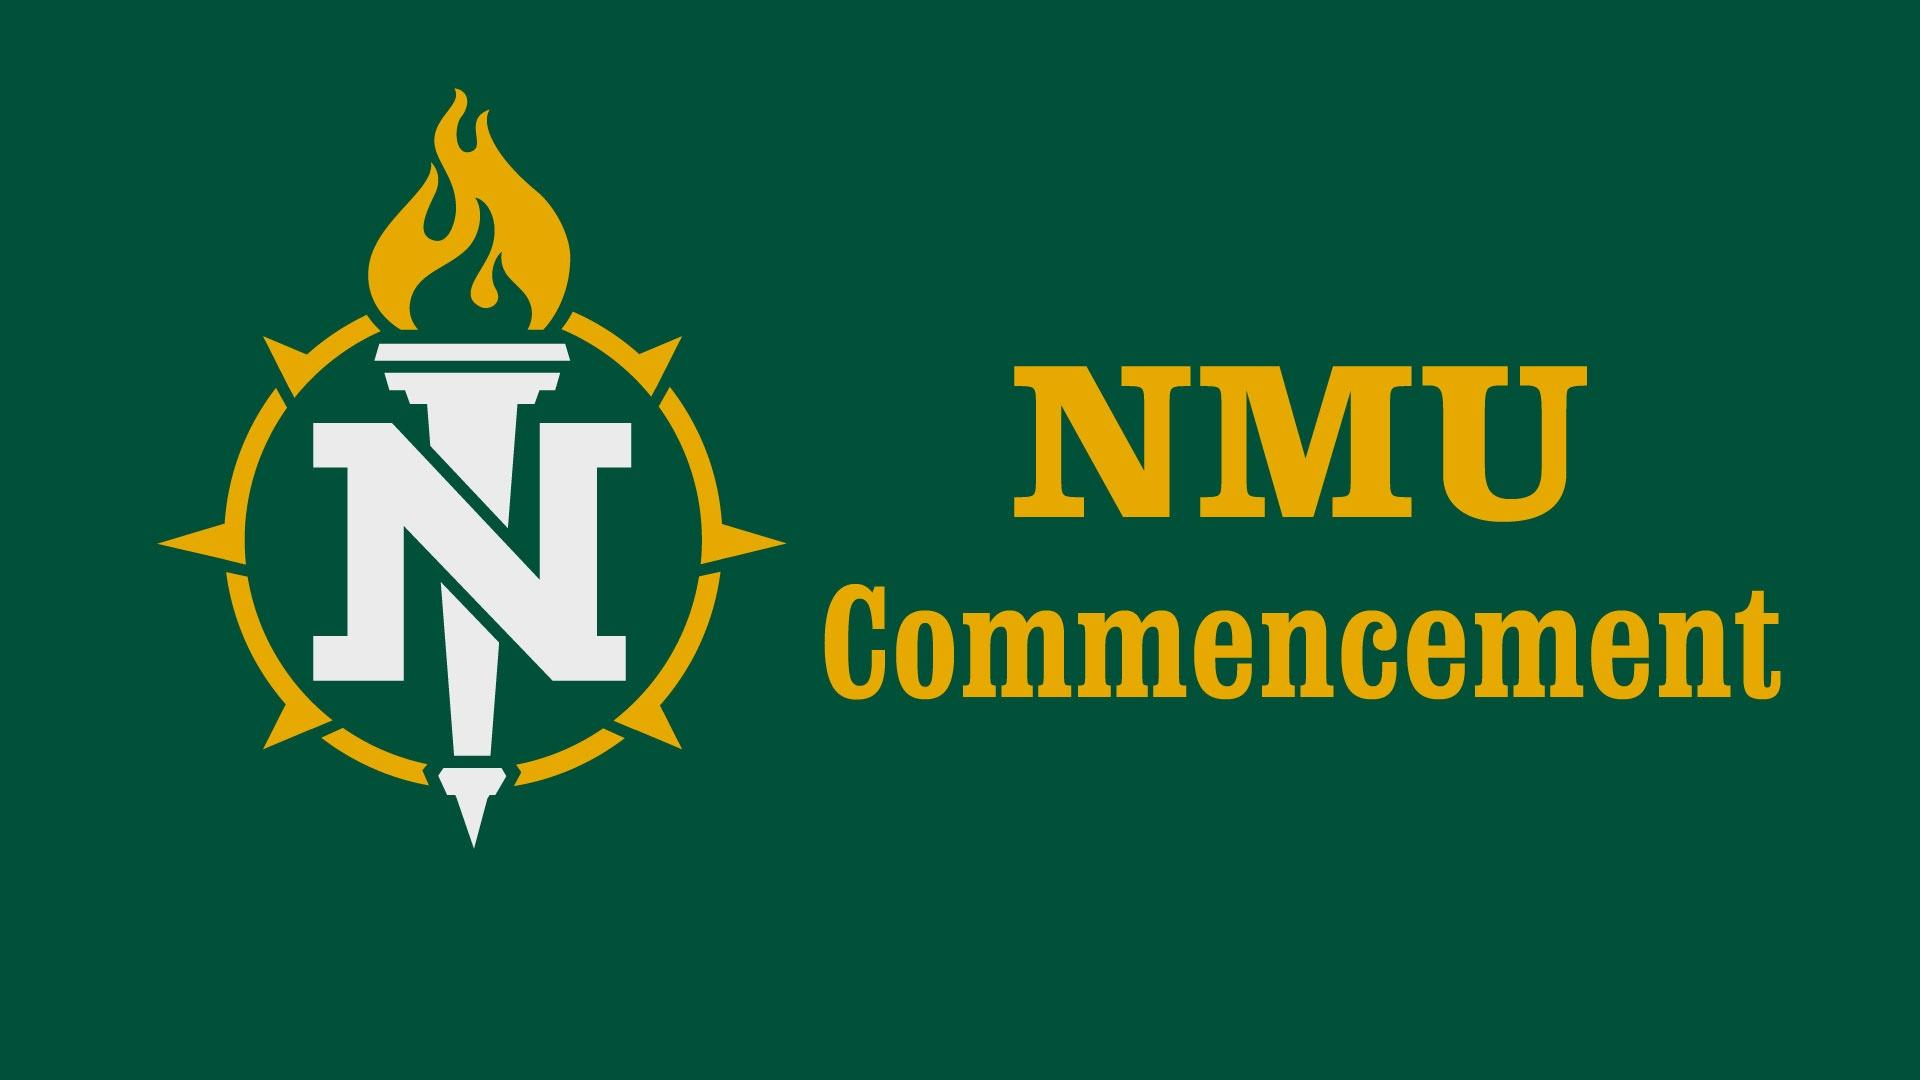 NMU Commencement title graphic